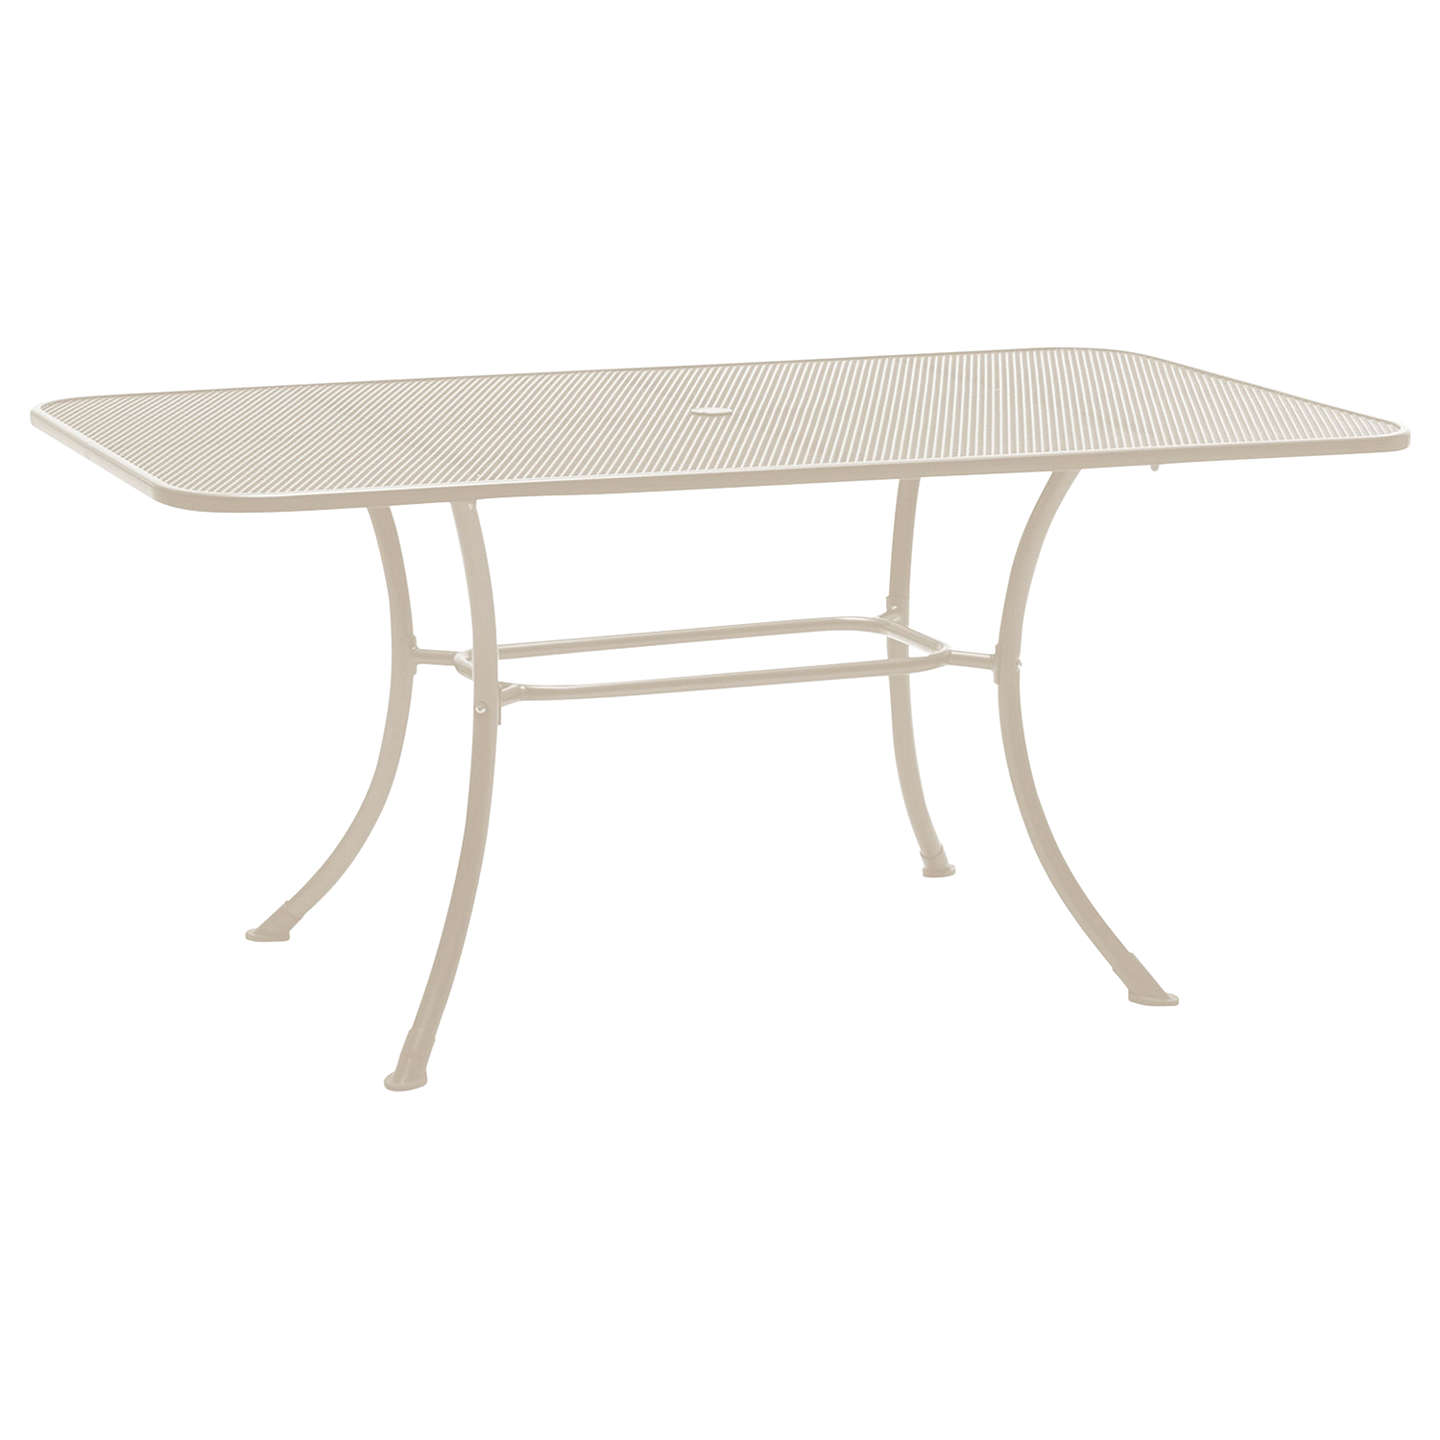 BuyJohn Lewis Henley by KETTLER 6-Seater Rectangular Garden Dining Table, Mocha Light Online at johnlewis.com